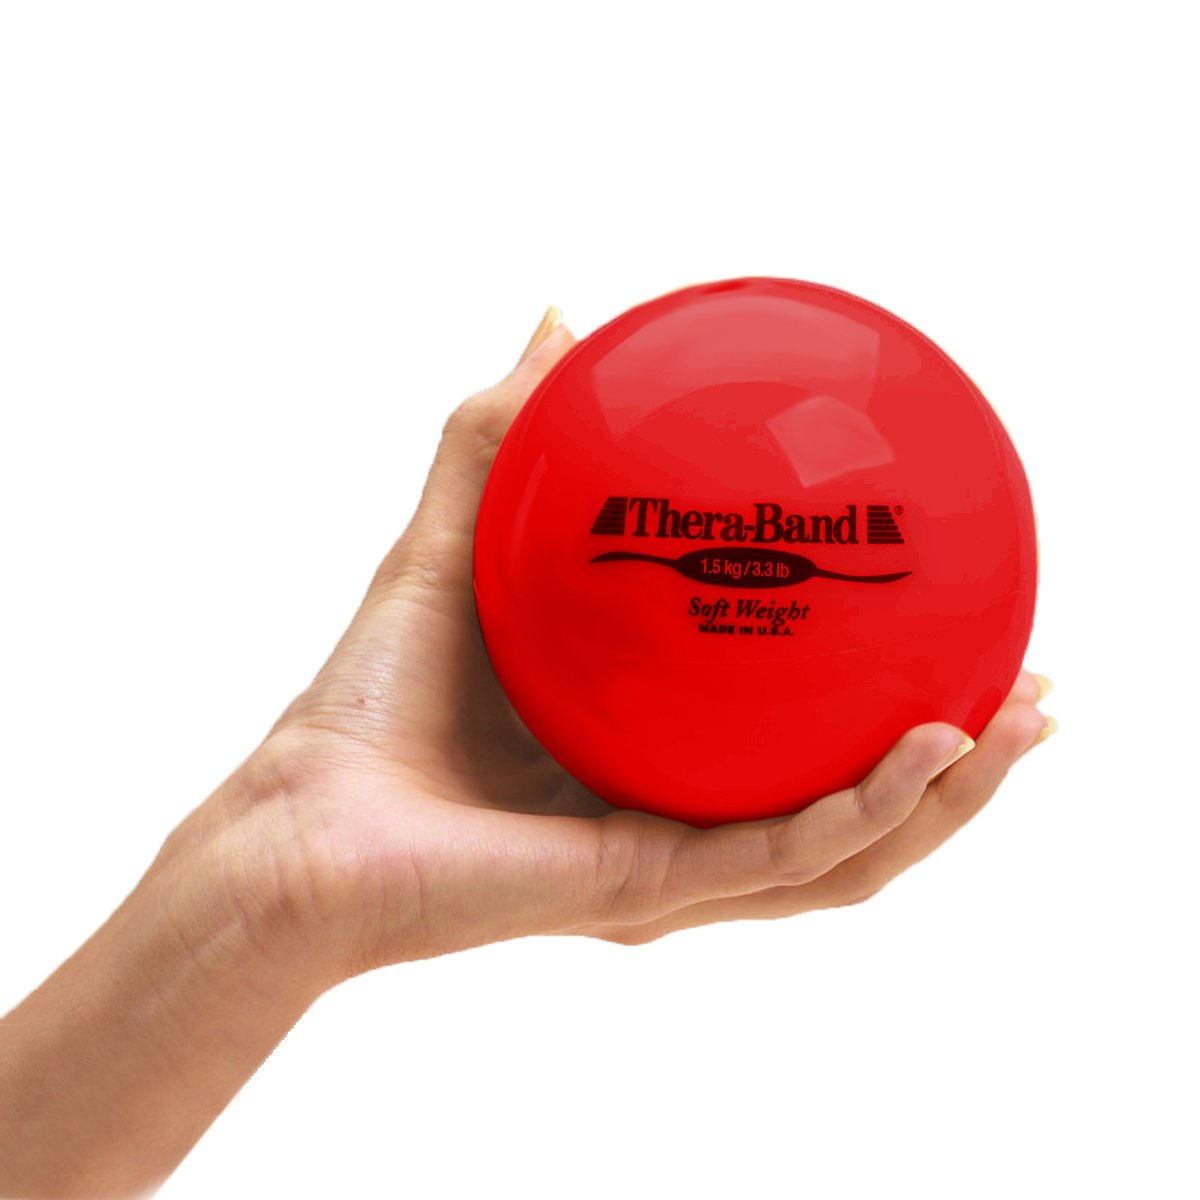 TheraBand Soft Weight, 4.5'' Diameter Hand Held Ball Shaped Isotonic Weighted Ball for Isometric Workouts, Strength Training and Rehab Exercises, Shoulder Strengthening and Surgery Rehabilitation, Red, 3.3 pound